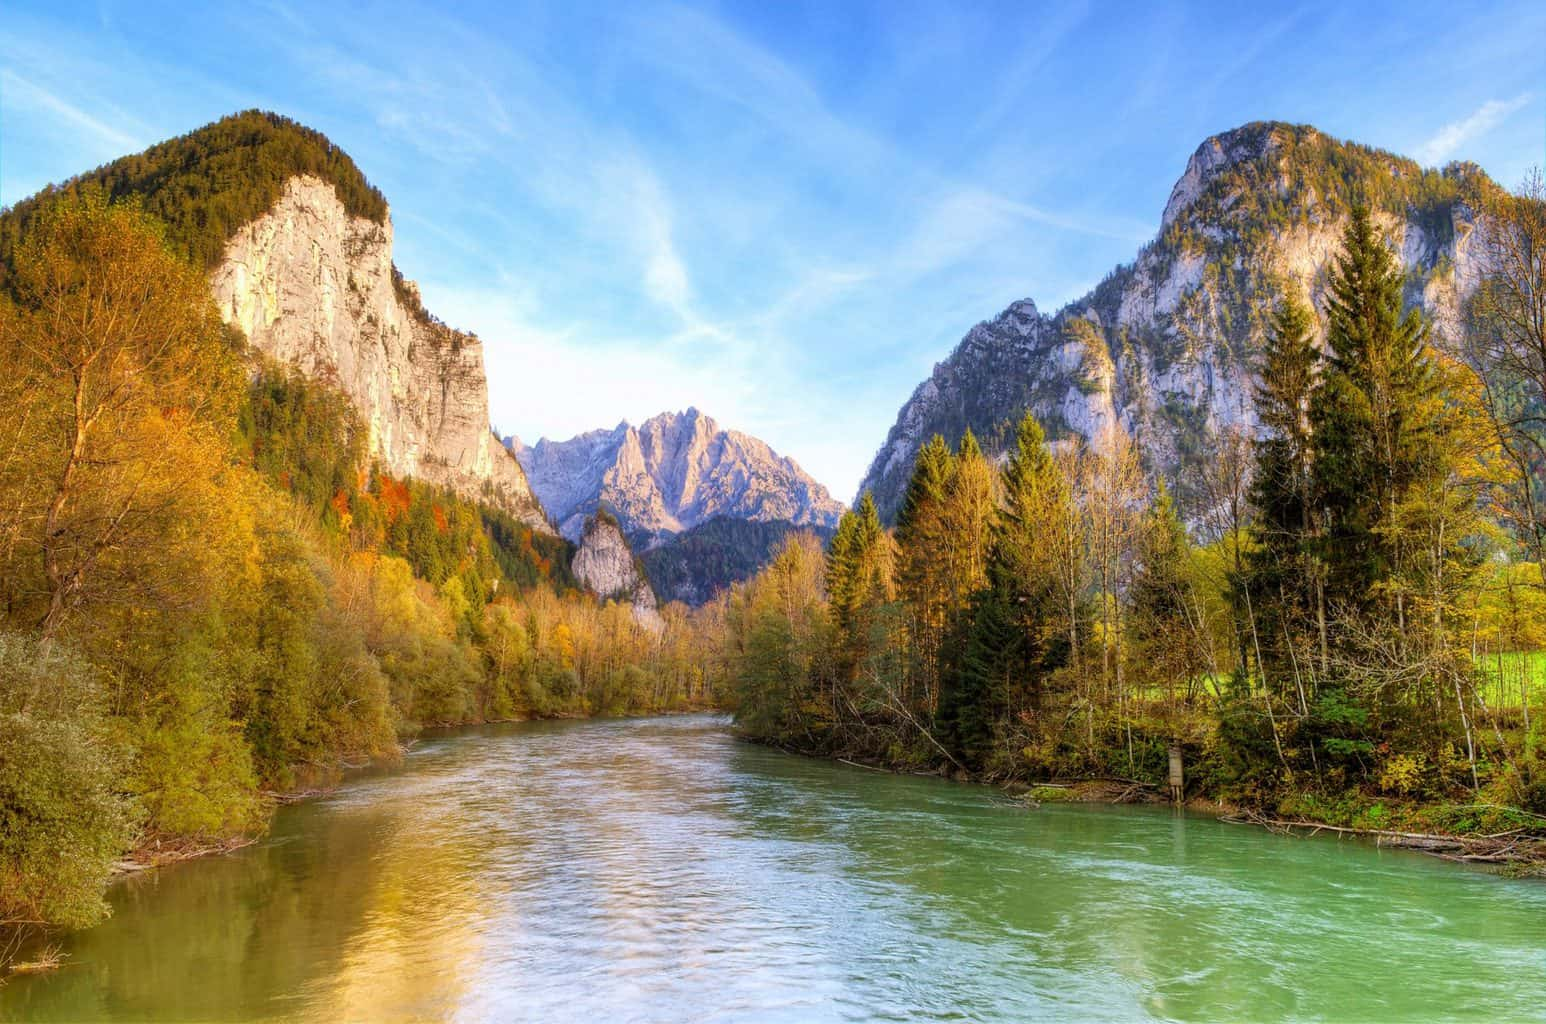 Gorgeous views of Gesaeuse National Park Austria